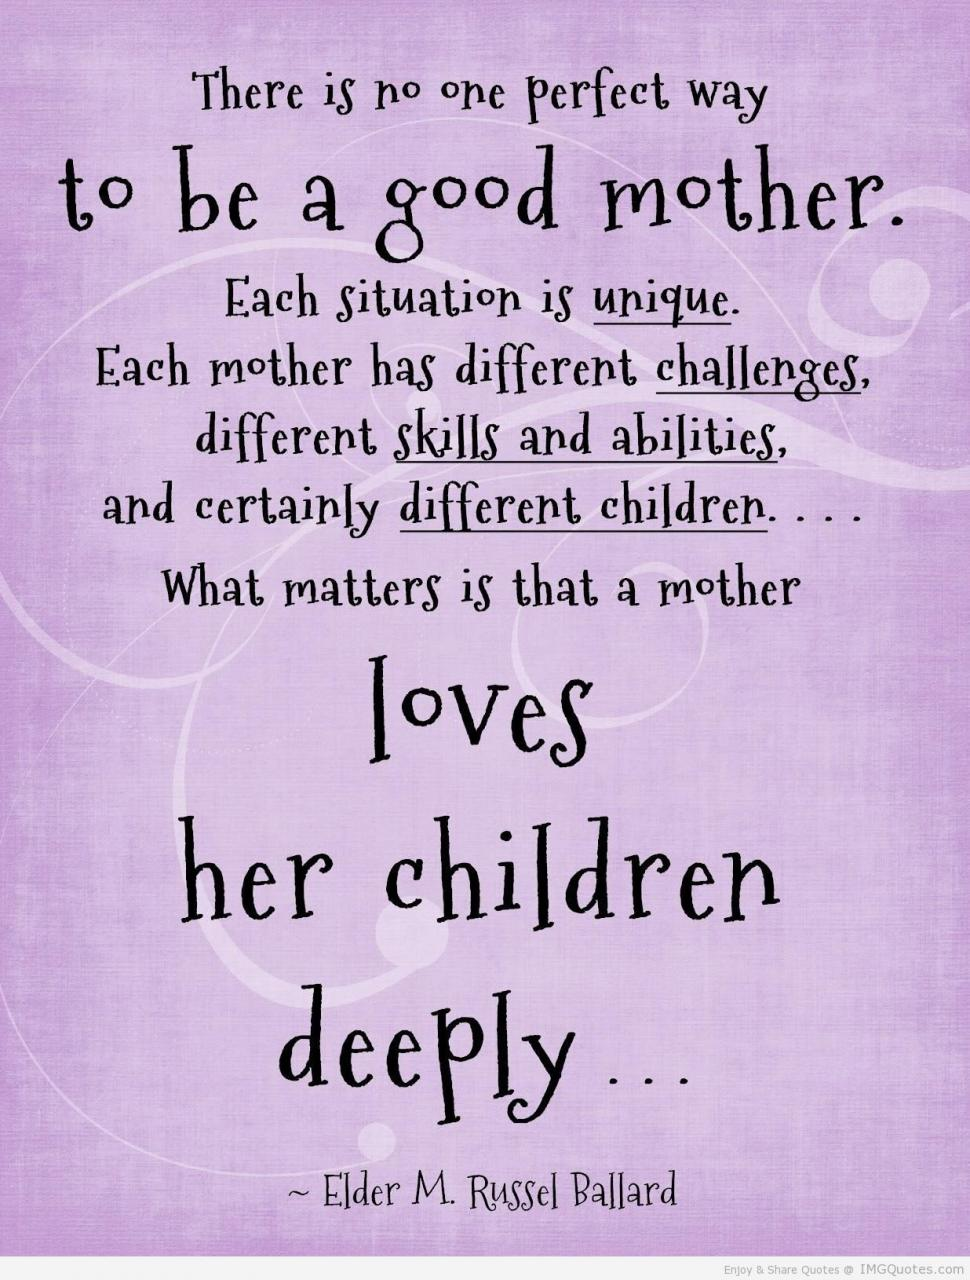 Loves Her Children Deeply Faith Quote Imgquotes